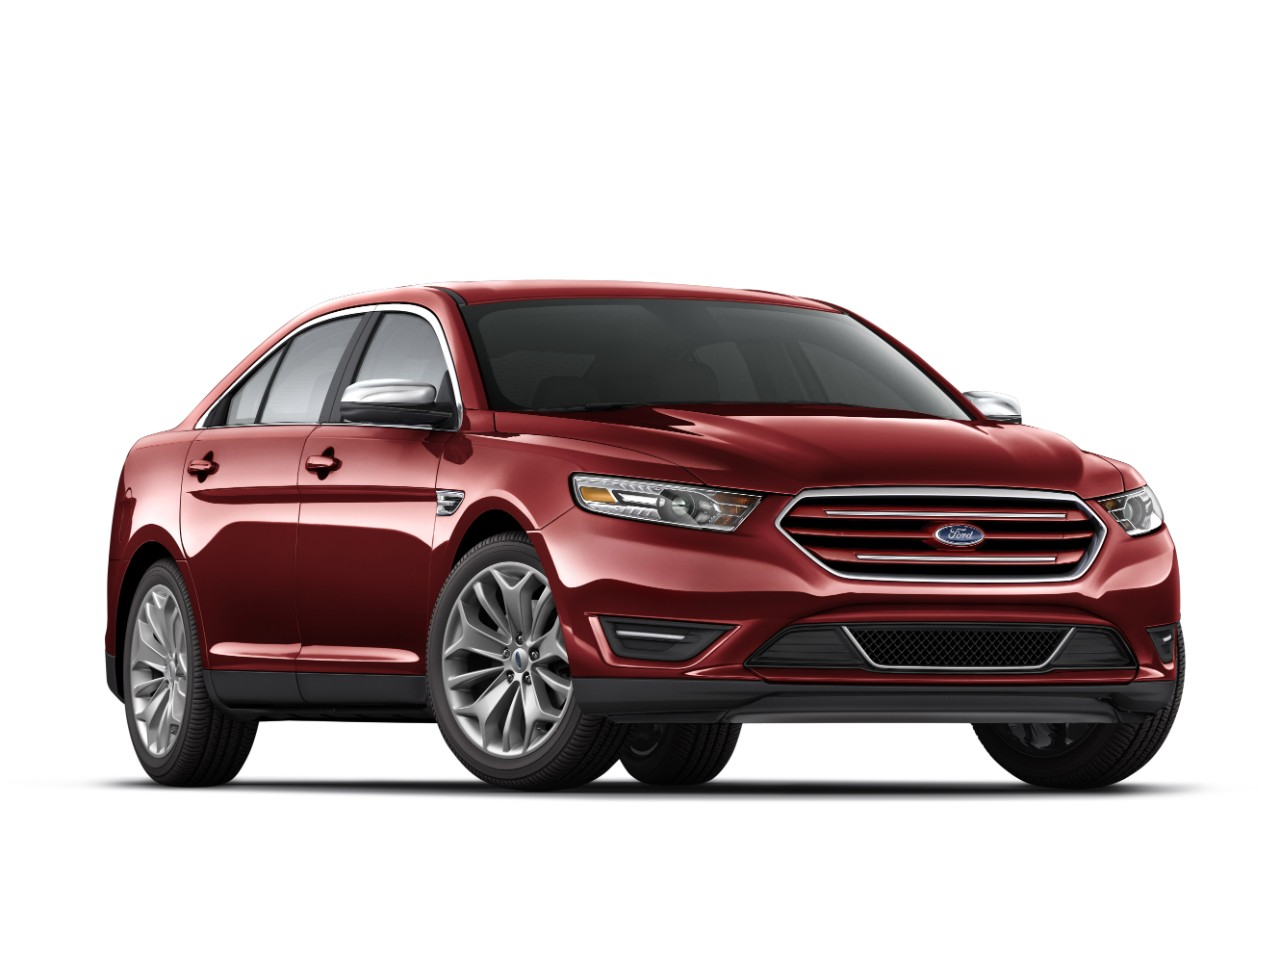 2016 ford taurus safety review and crash test ratings the car connection. Black Bedroom Furniture Sets. Home Design Ideas